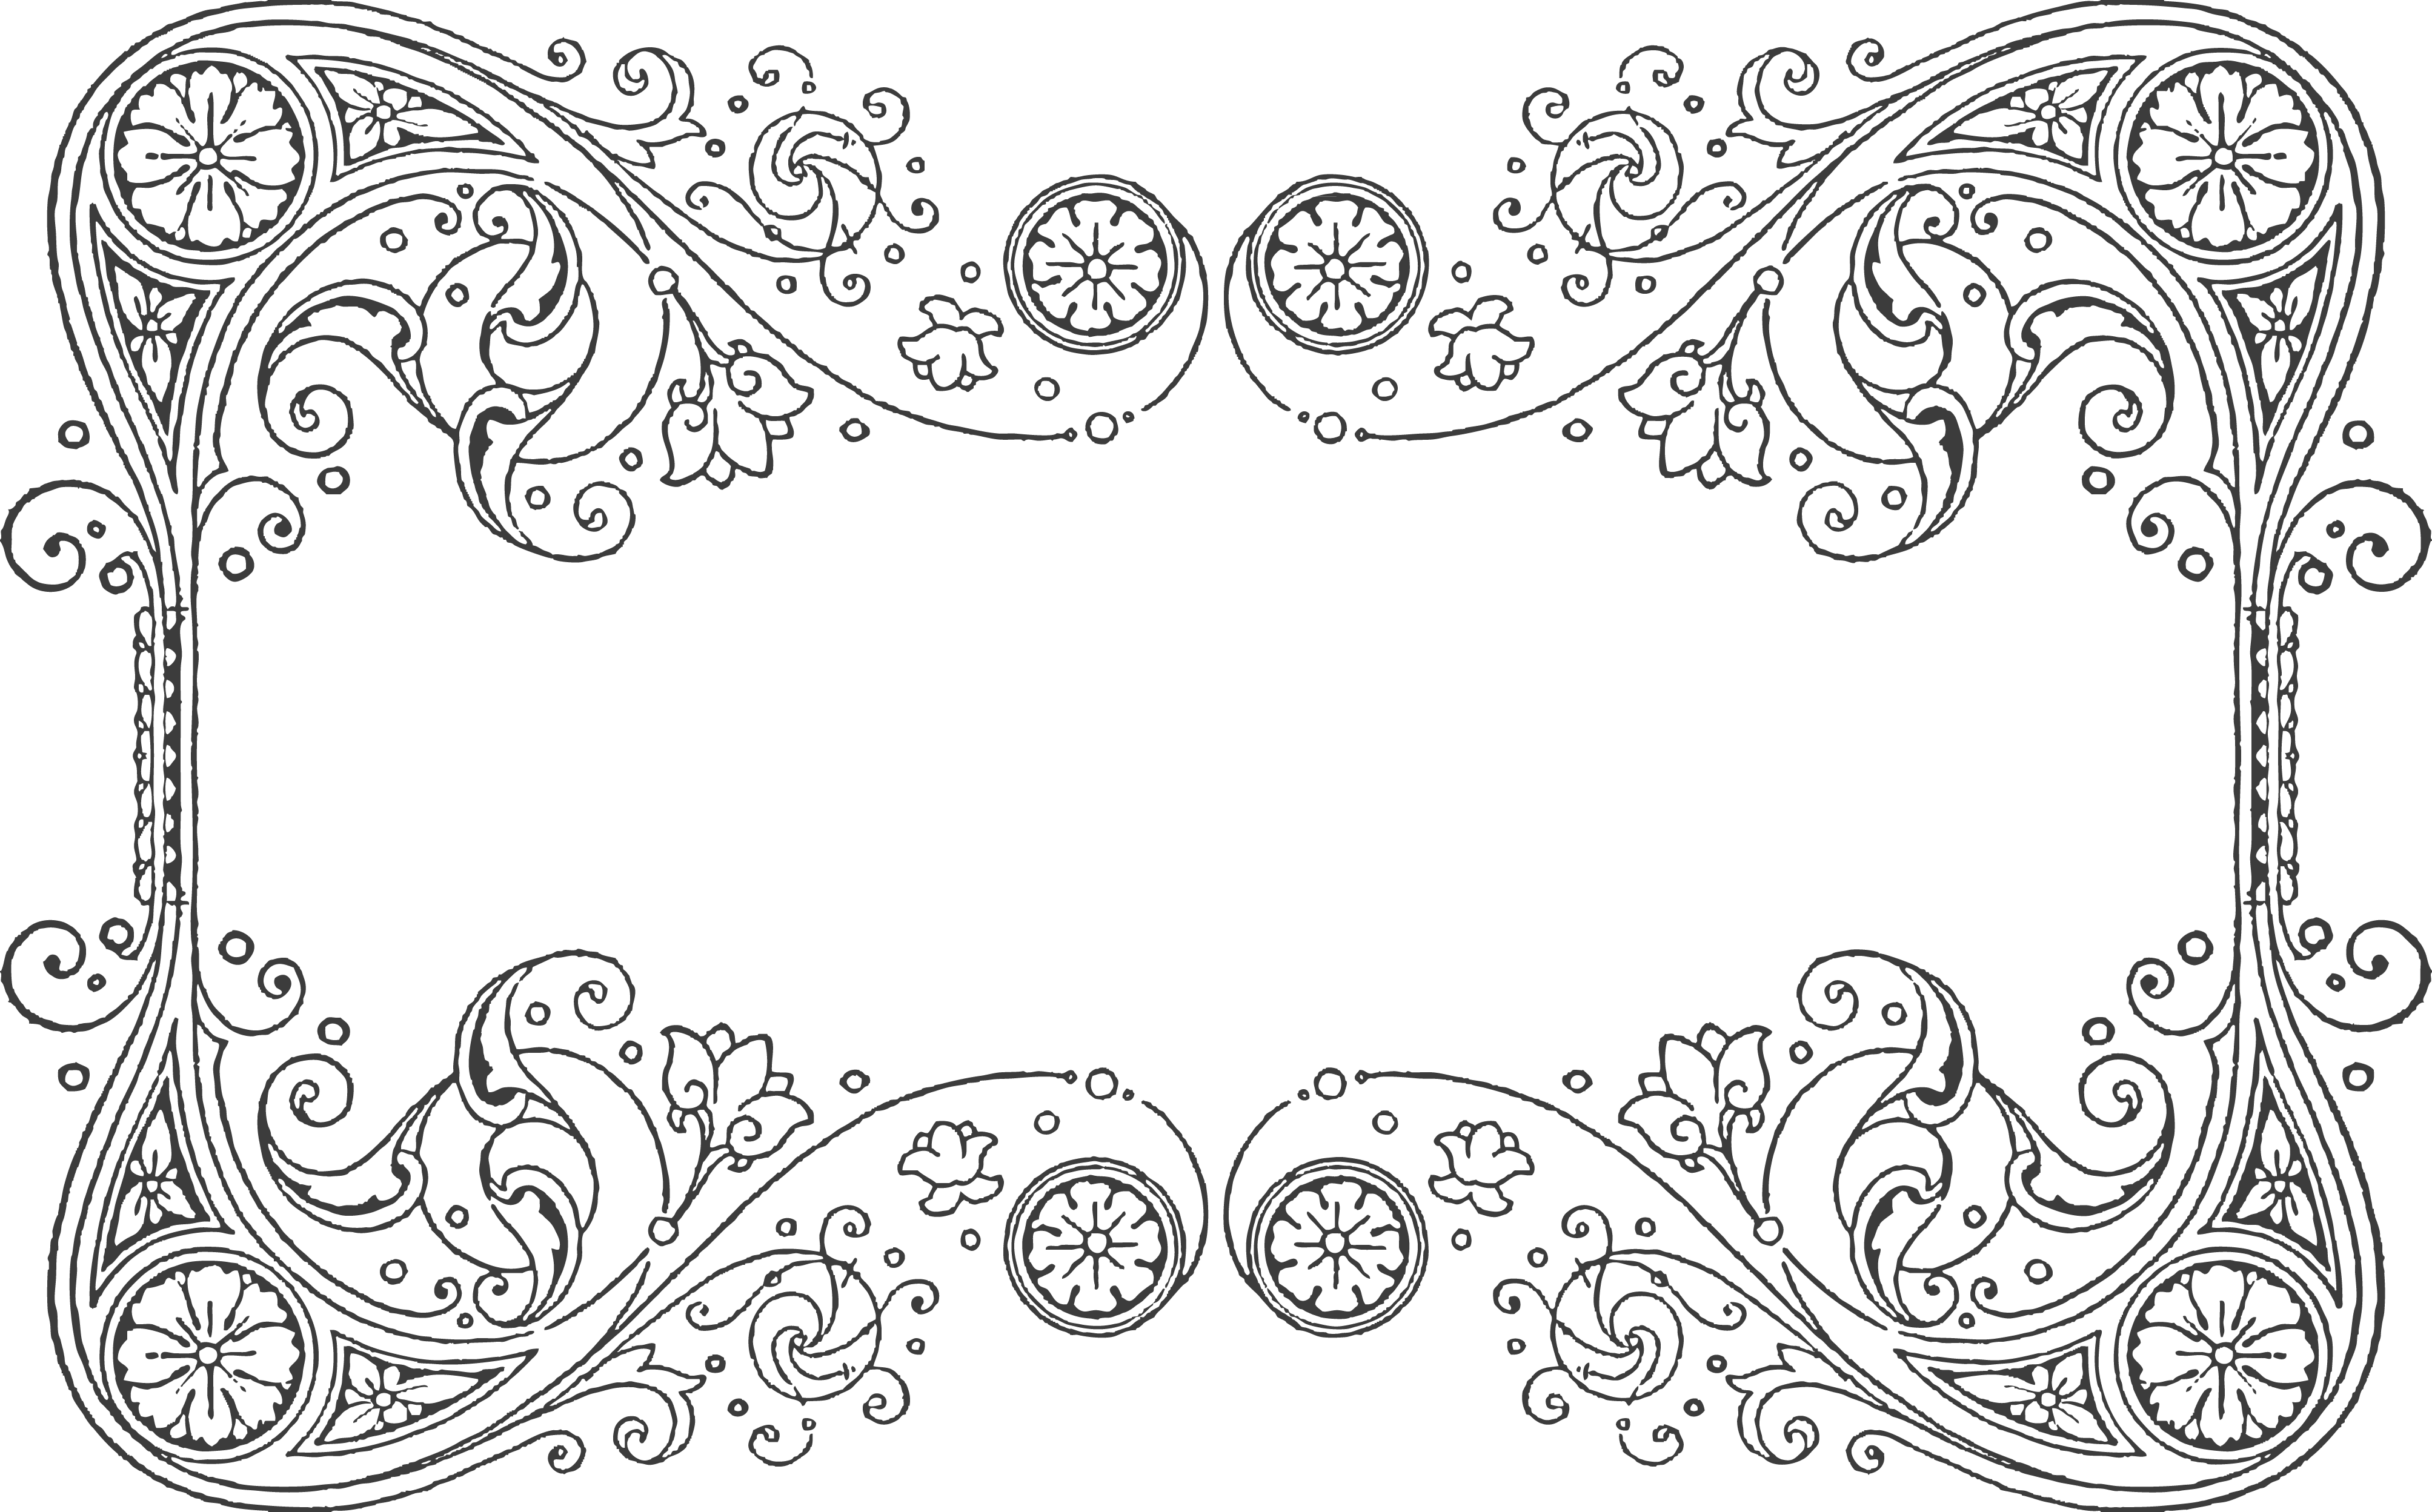 Filigree border png. Quilling design pattern for